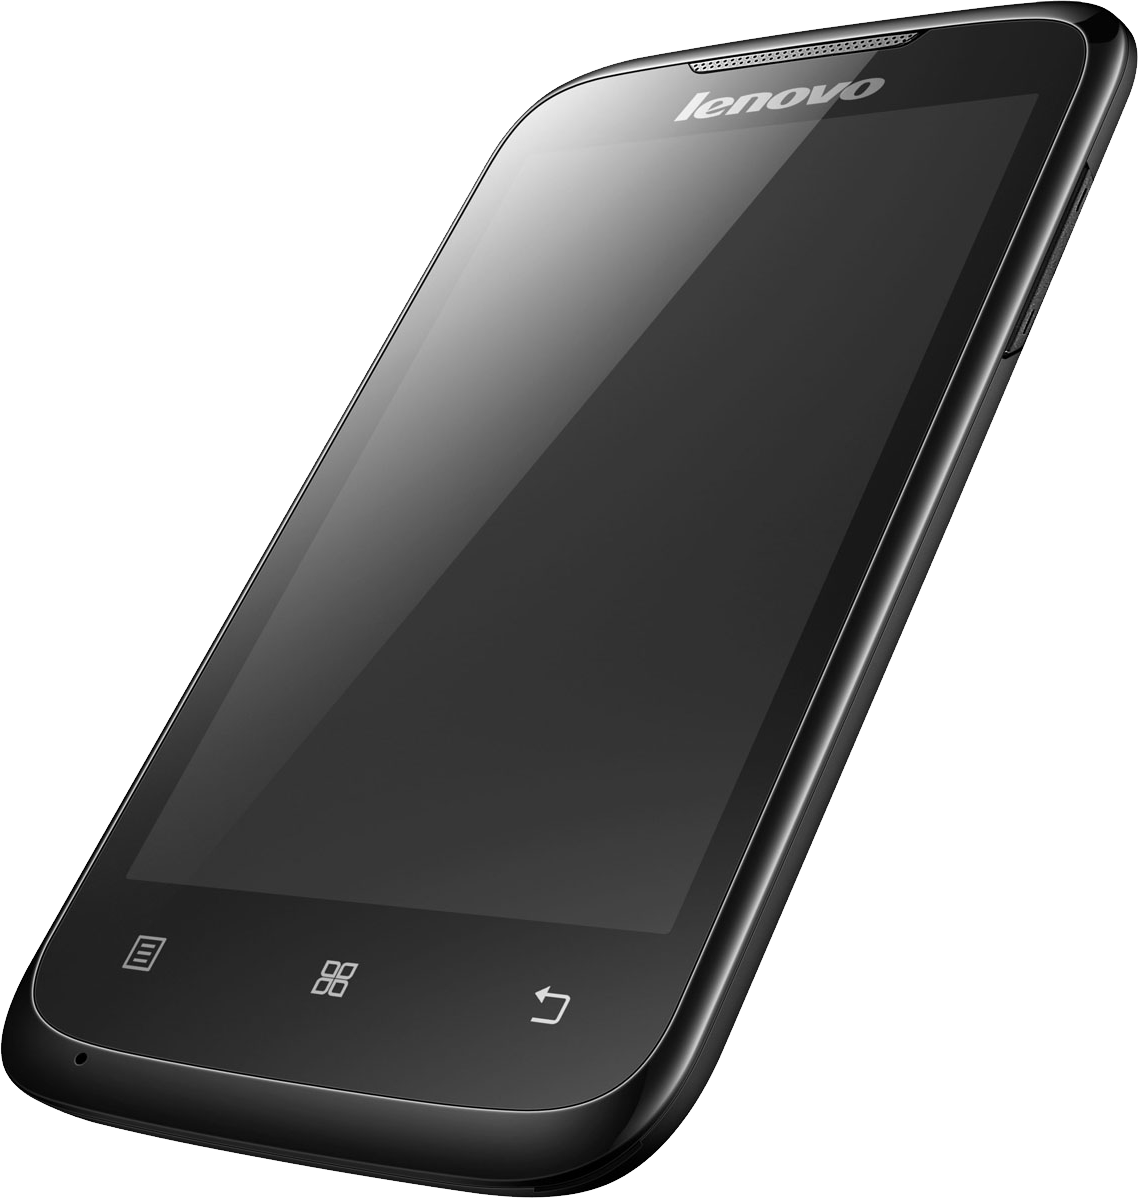 Lenovo smartphone mobile png. Clipart phone feature phone